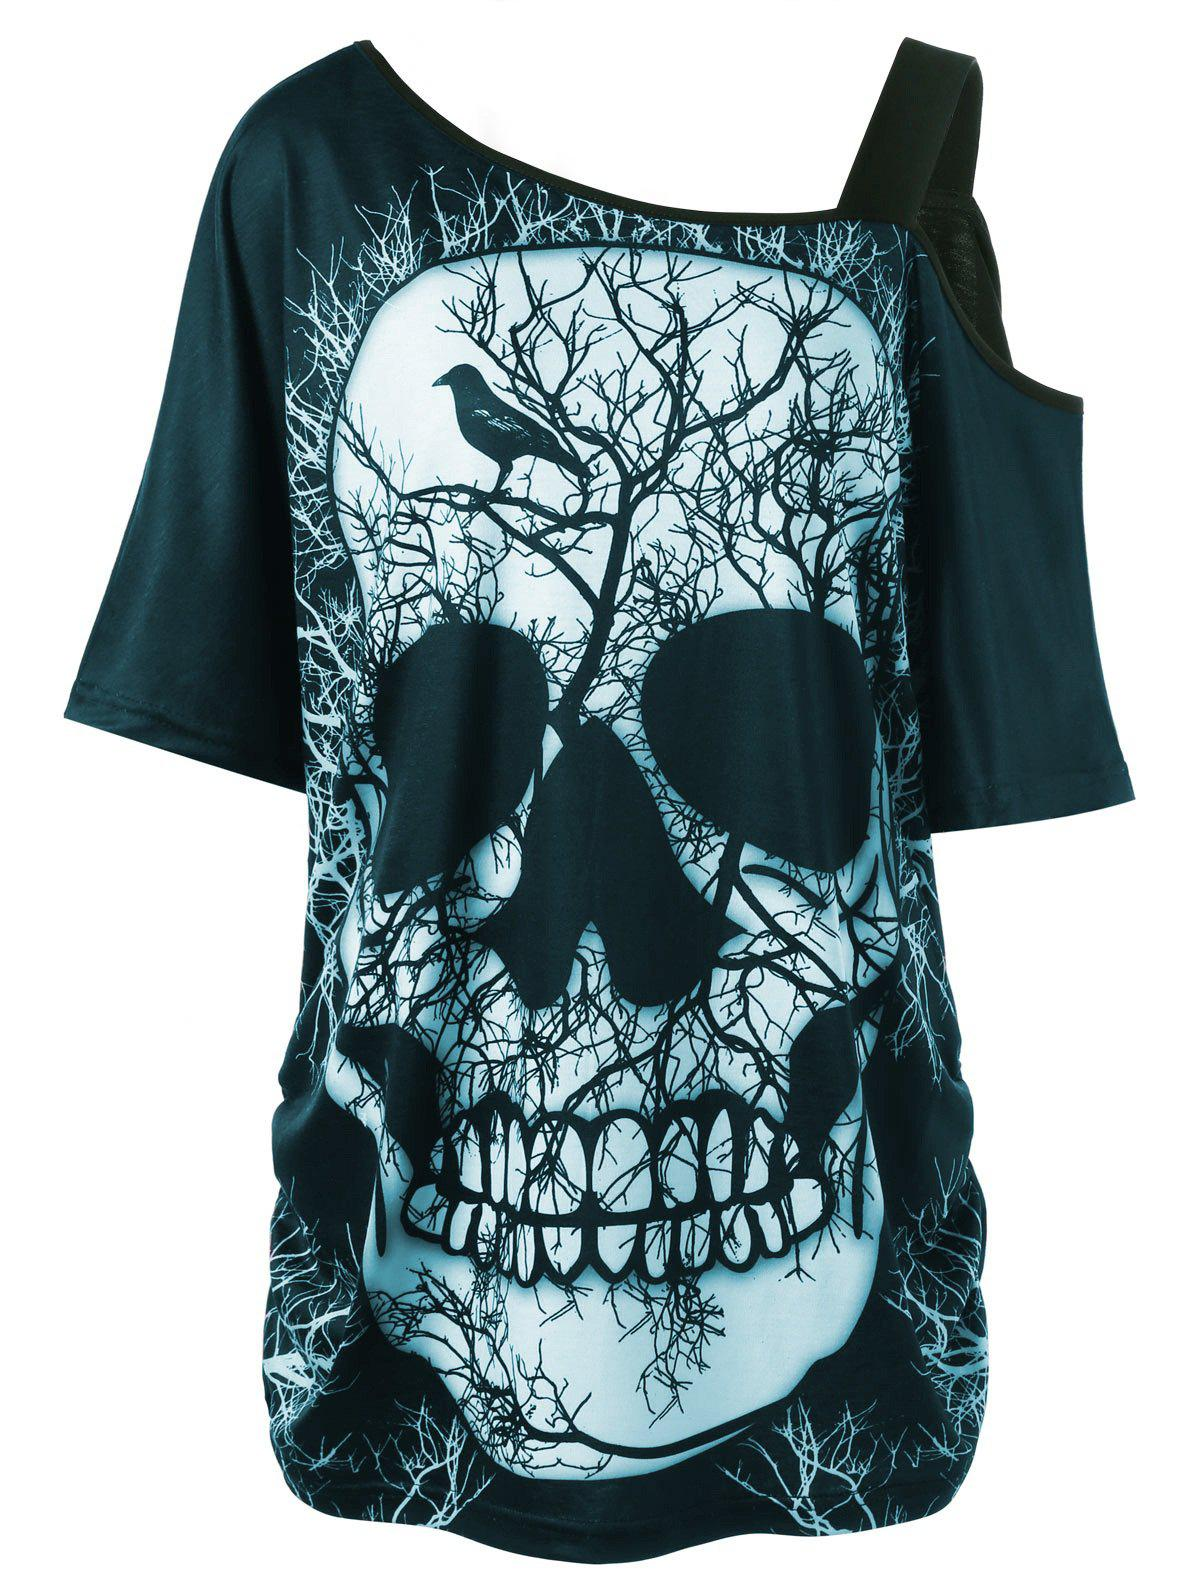 Plus Size Skull Skew Collar Long T-shirtWOMEN<br><br>Size: XL; Color: CYAN; Material: Polyester,Spandex; Shirt Length: Long; Sleeve Length: Short; Collar: Skew Collar; Style: Casual; Season: Summer; Pattern Type: Skulls; Weight: 0.3000kg; Package Contents: 1 x T-shirt;